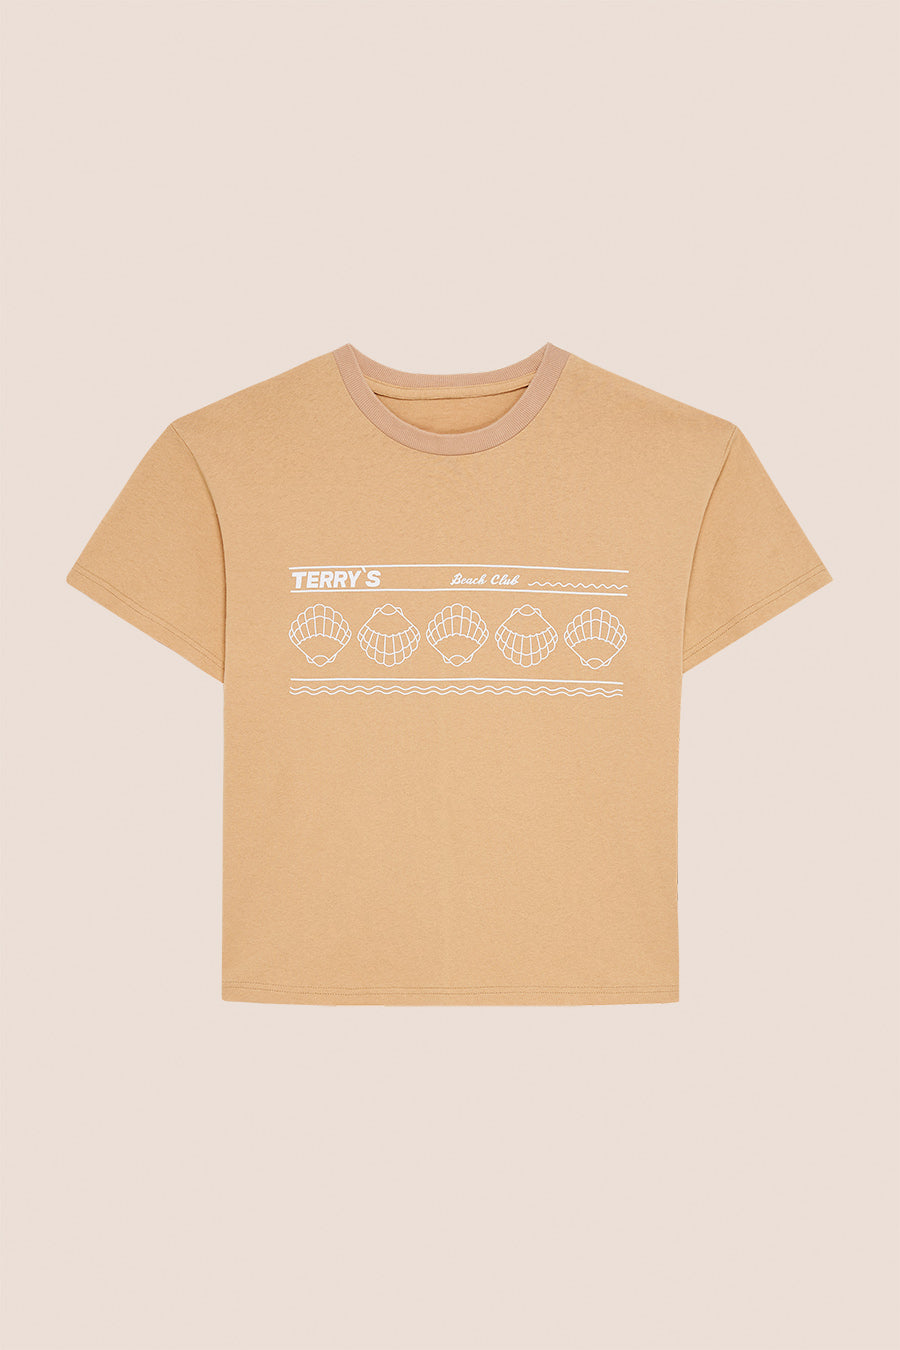 BEACH CLUB TEE - MANDORLA